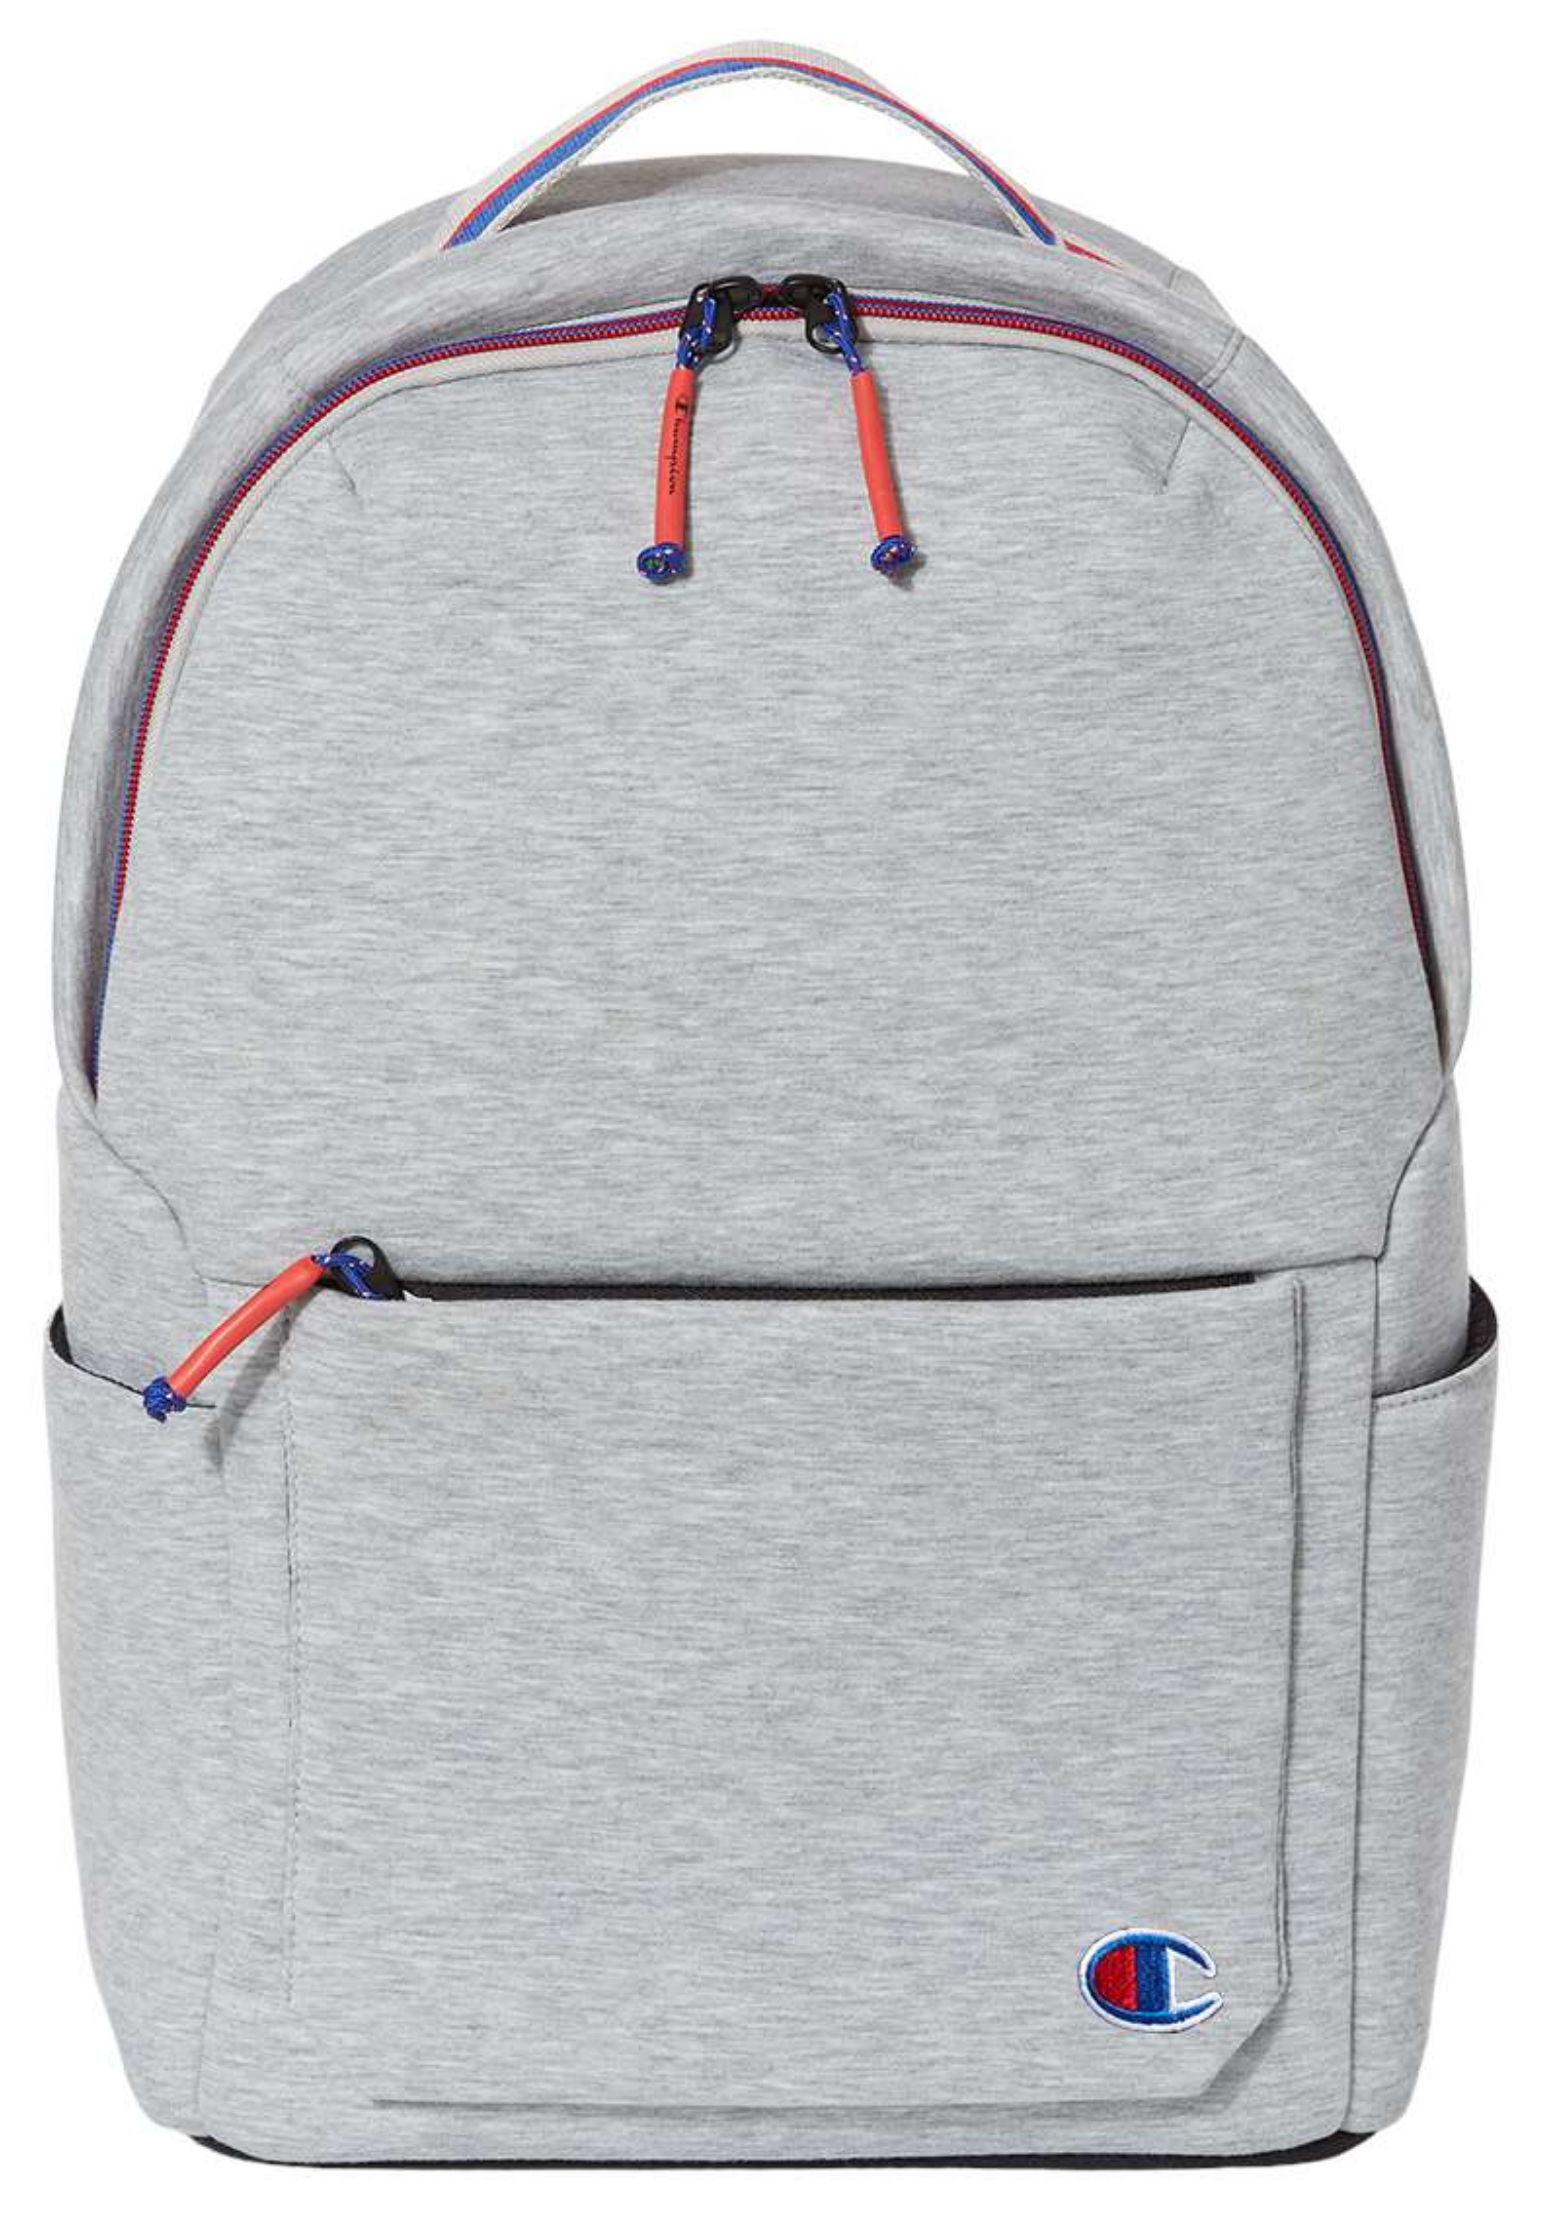 Champion Laptop Backpack